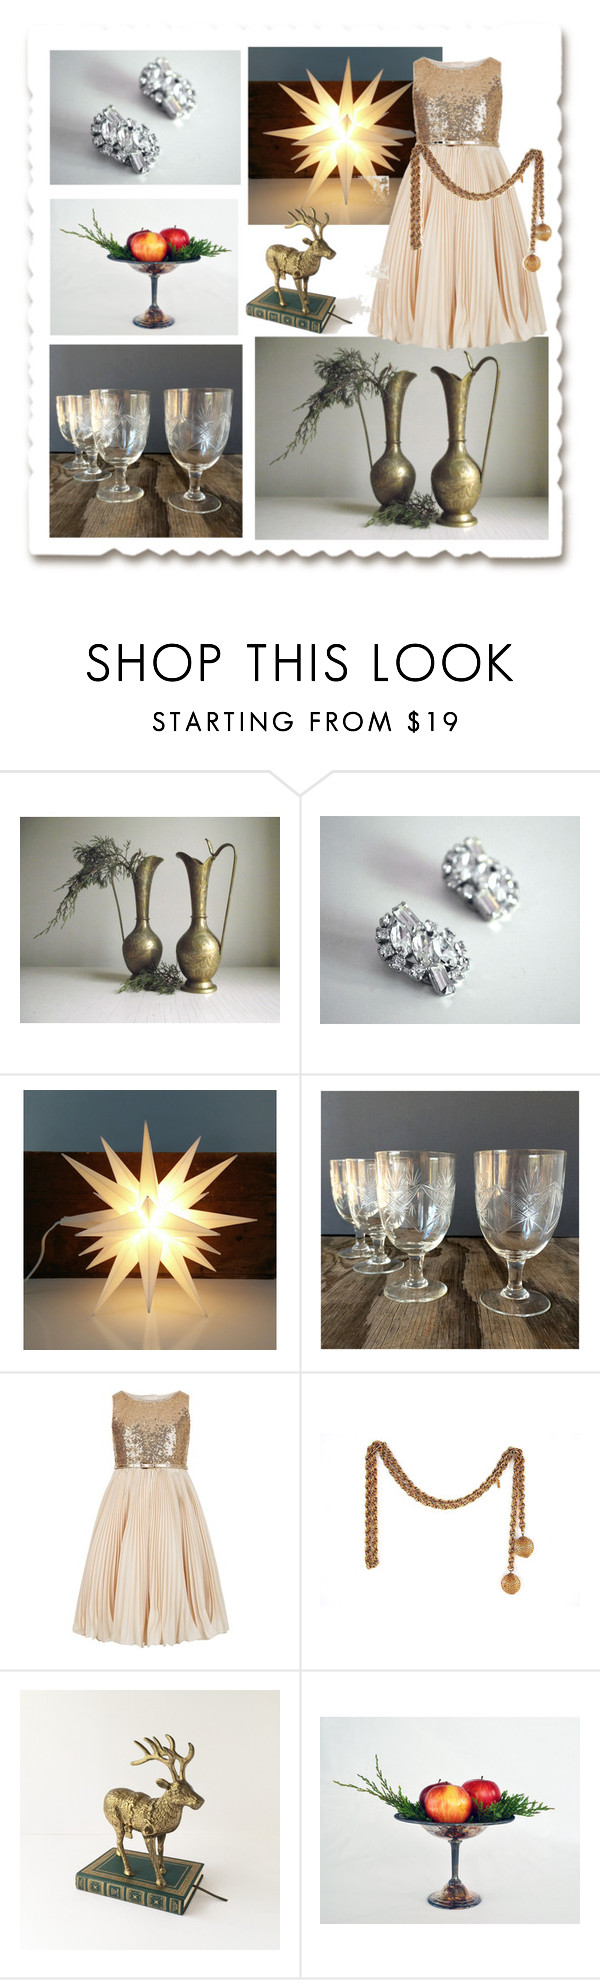 """Sparkle & Shine"" by gazaboovintage ❤ liked on Polyvore featuring interior, interiors, interior design, home, home decor, interior decorating, Monsoon, vintage and VintageAndMain"